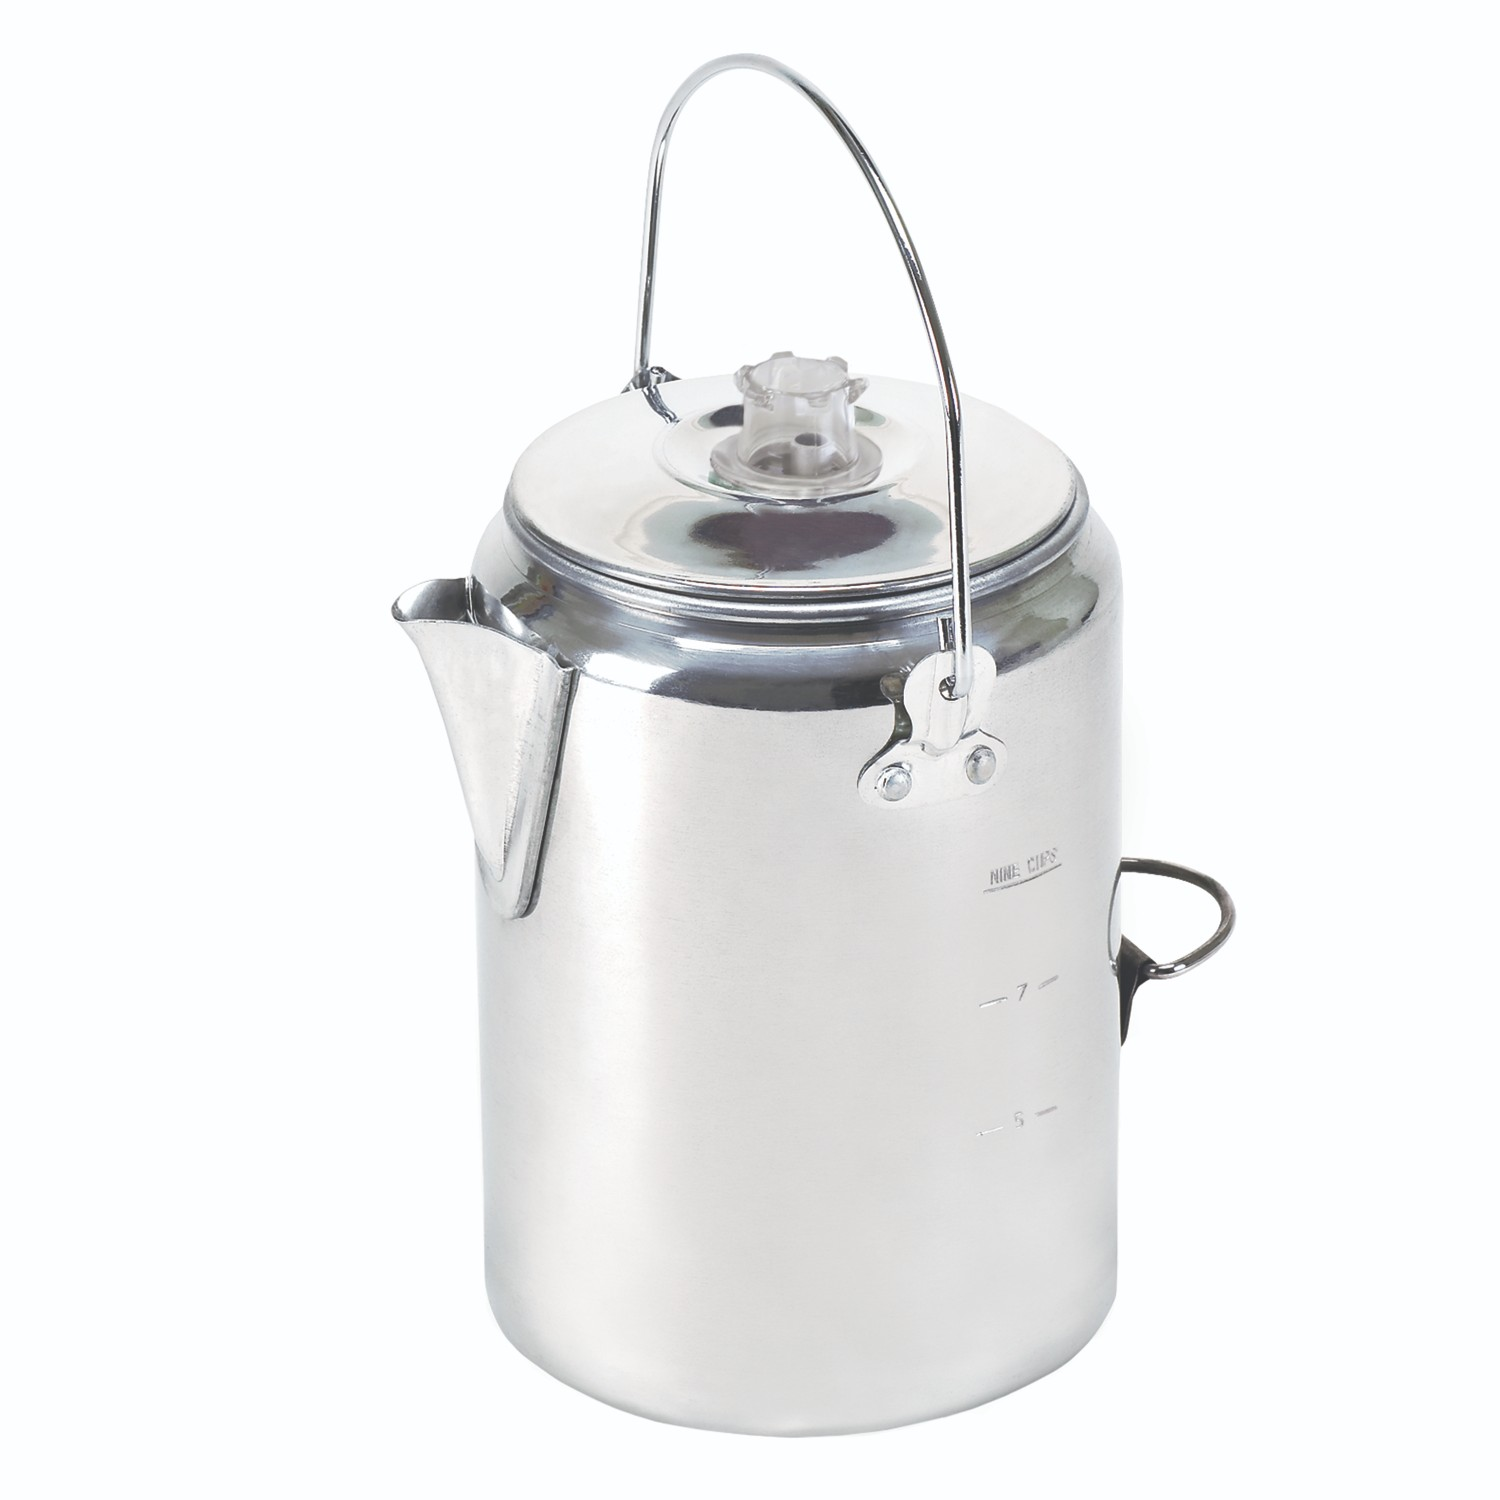 Stansport Aluminum Percolator Coffee Pot- 9 Cup